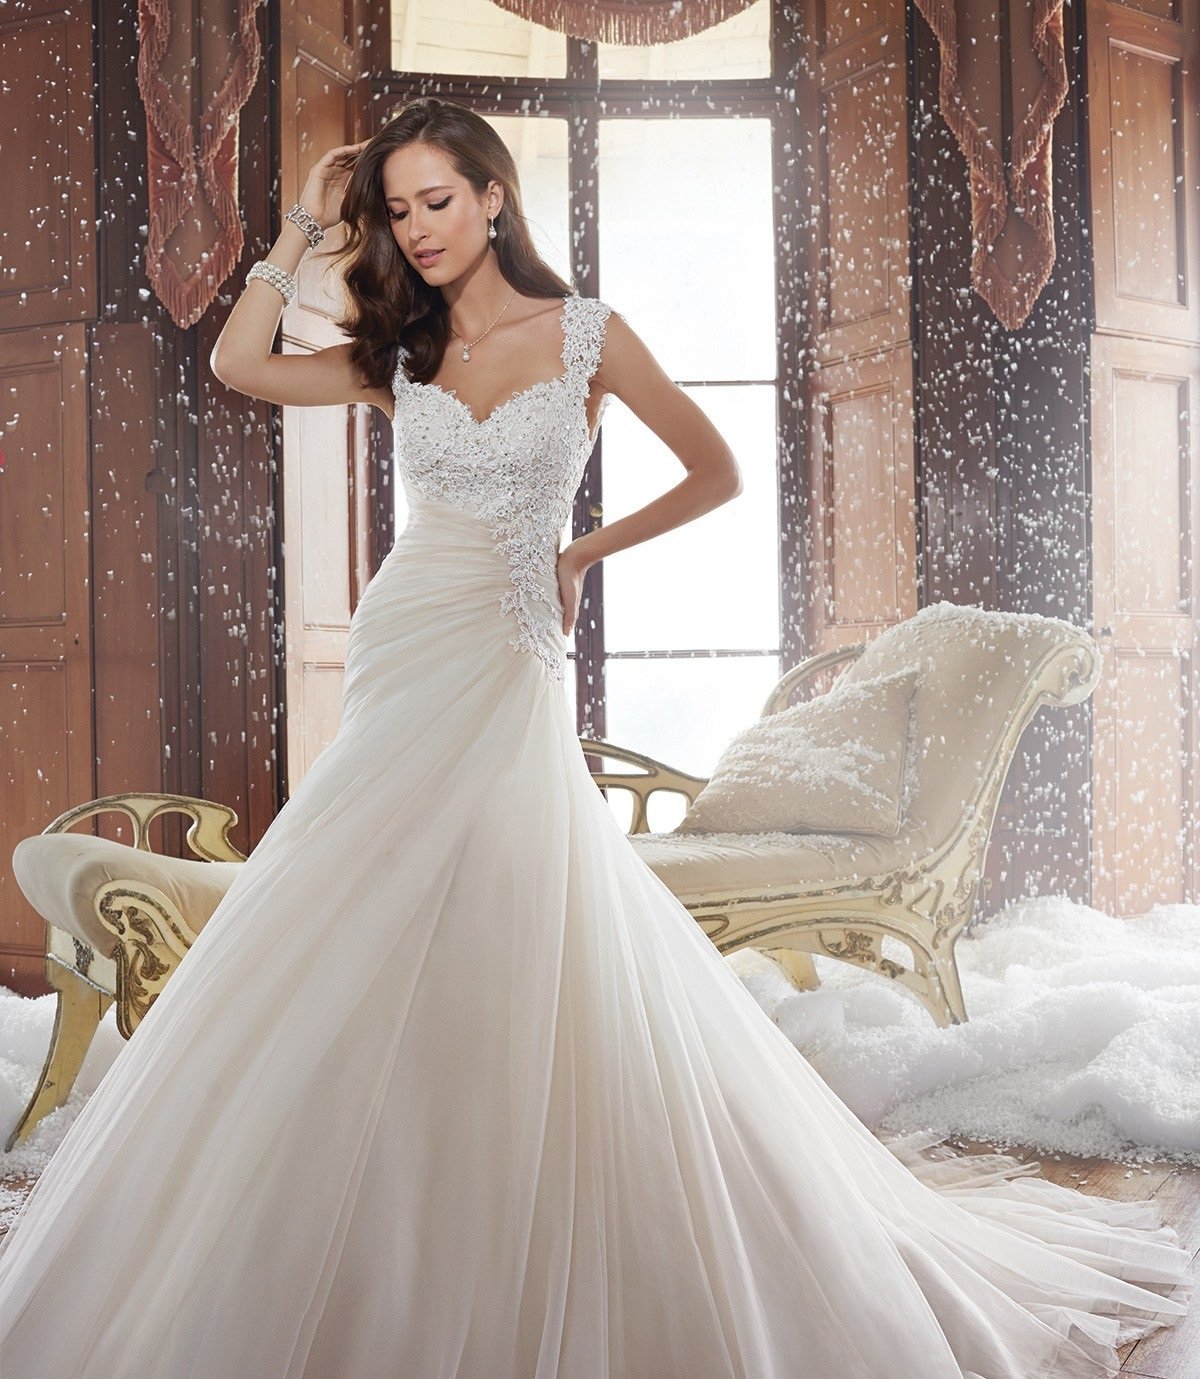 Sophia Tolli Y21508 Blush/Iv // Retail Price $1498 | CONTAct us for our price